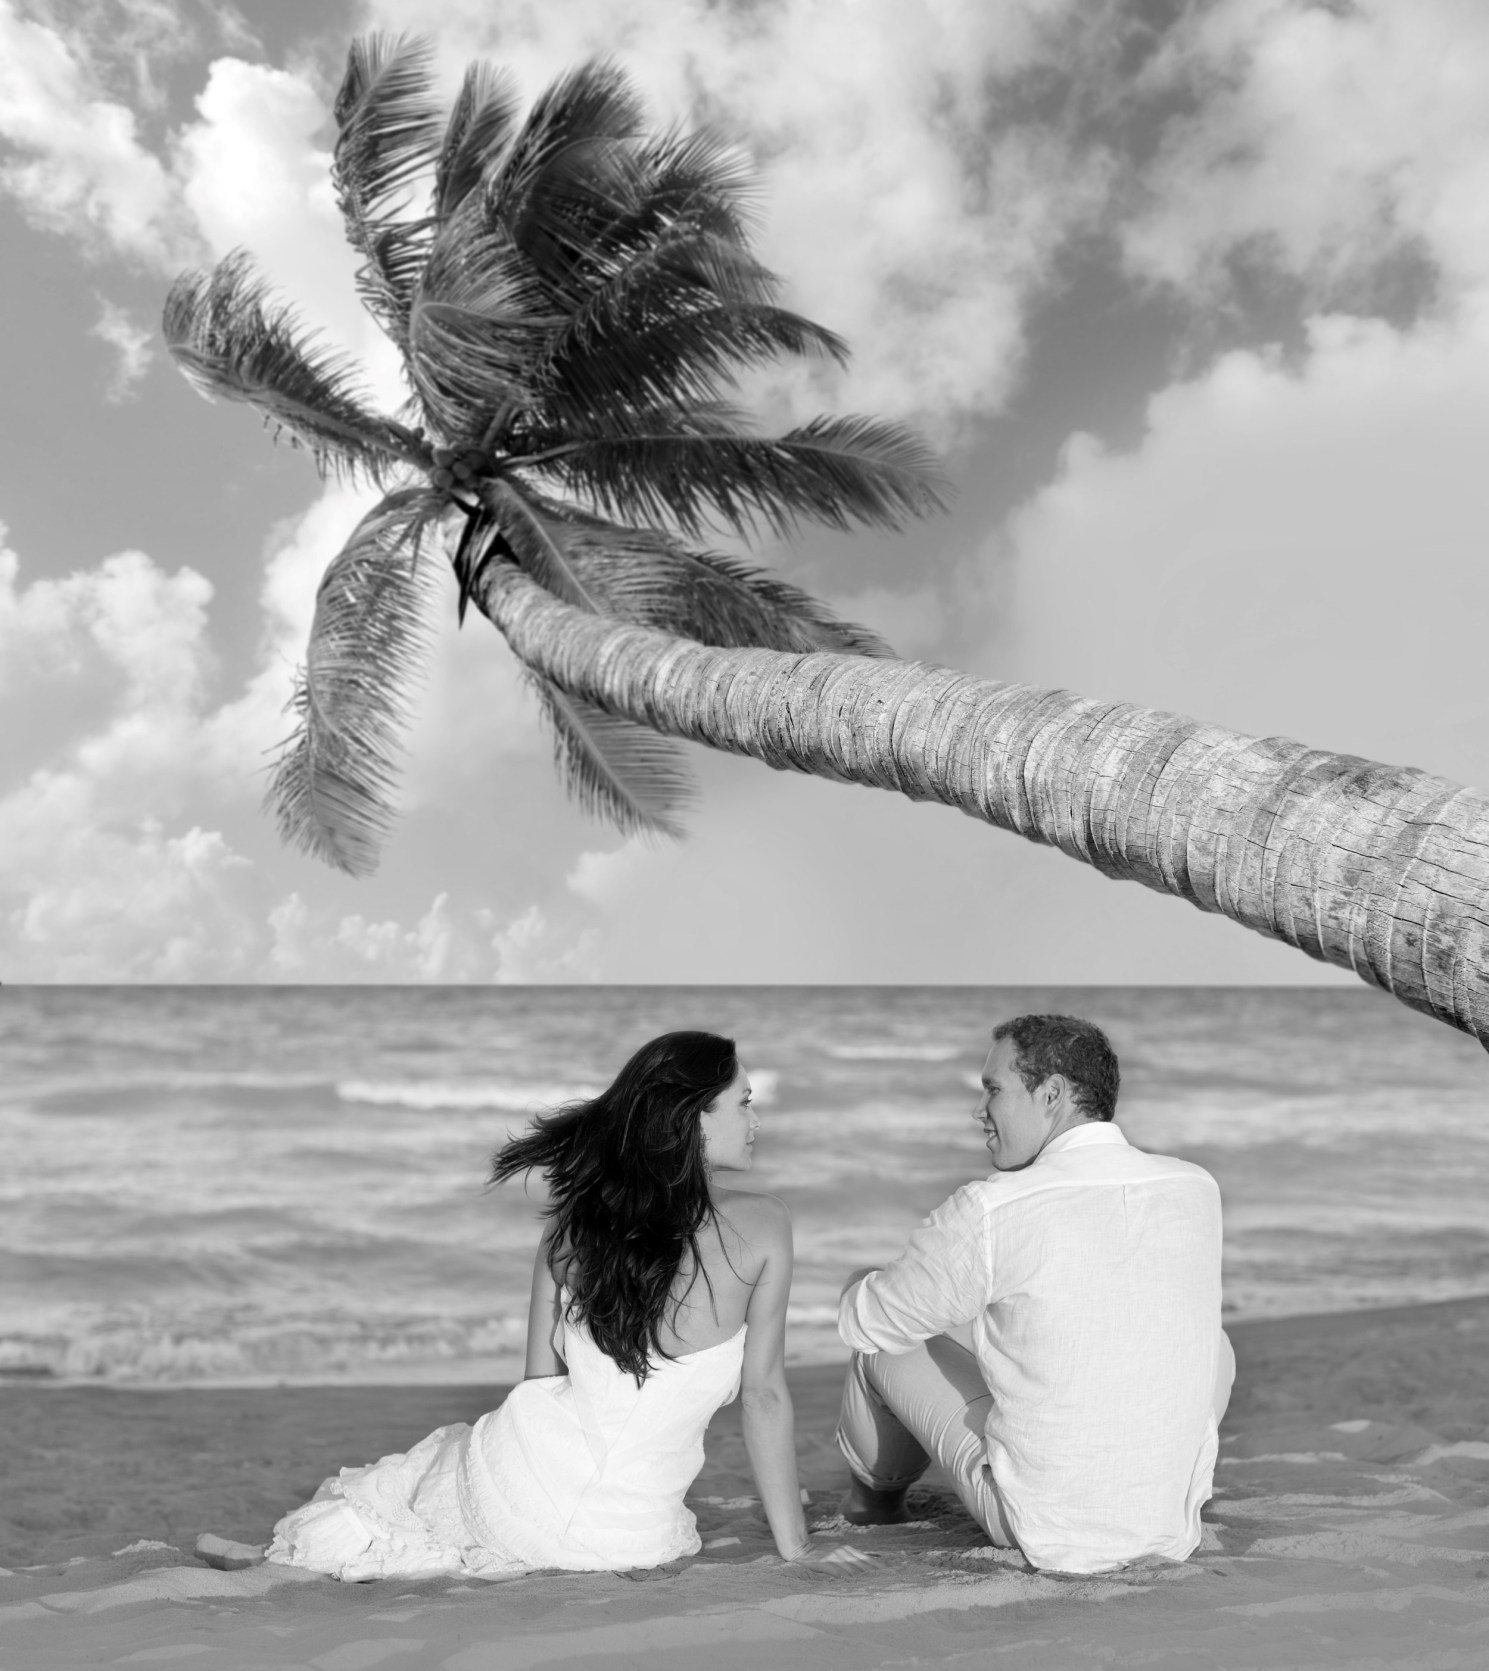 PART 1 WEDDING BEACH COUPLES PORTRAITS COLOUR AND BLACK AND WHITE 007280 (Custom)